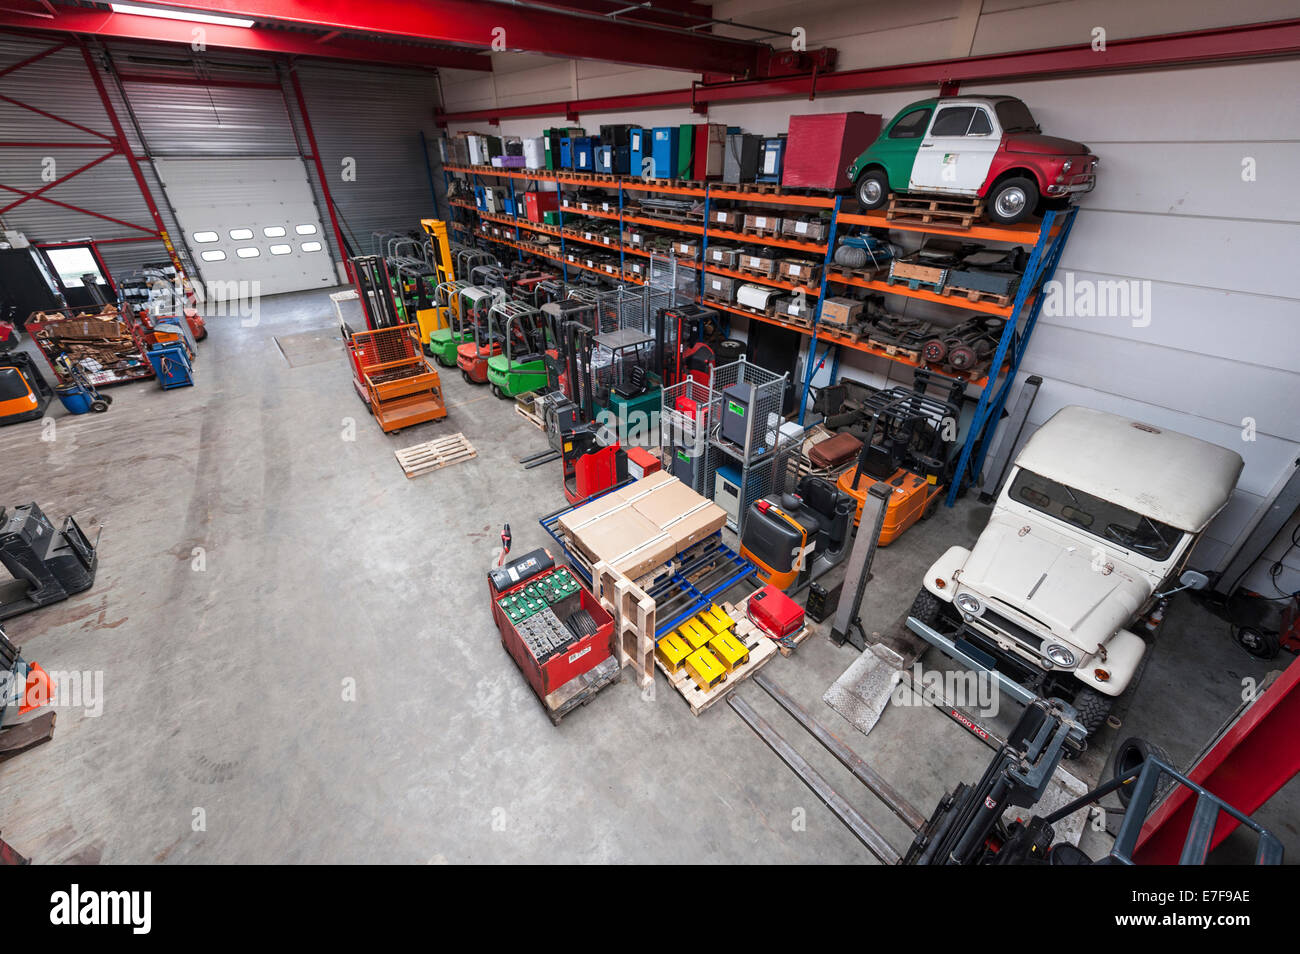 High angle view of machinery in warehouse - Stock Image